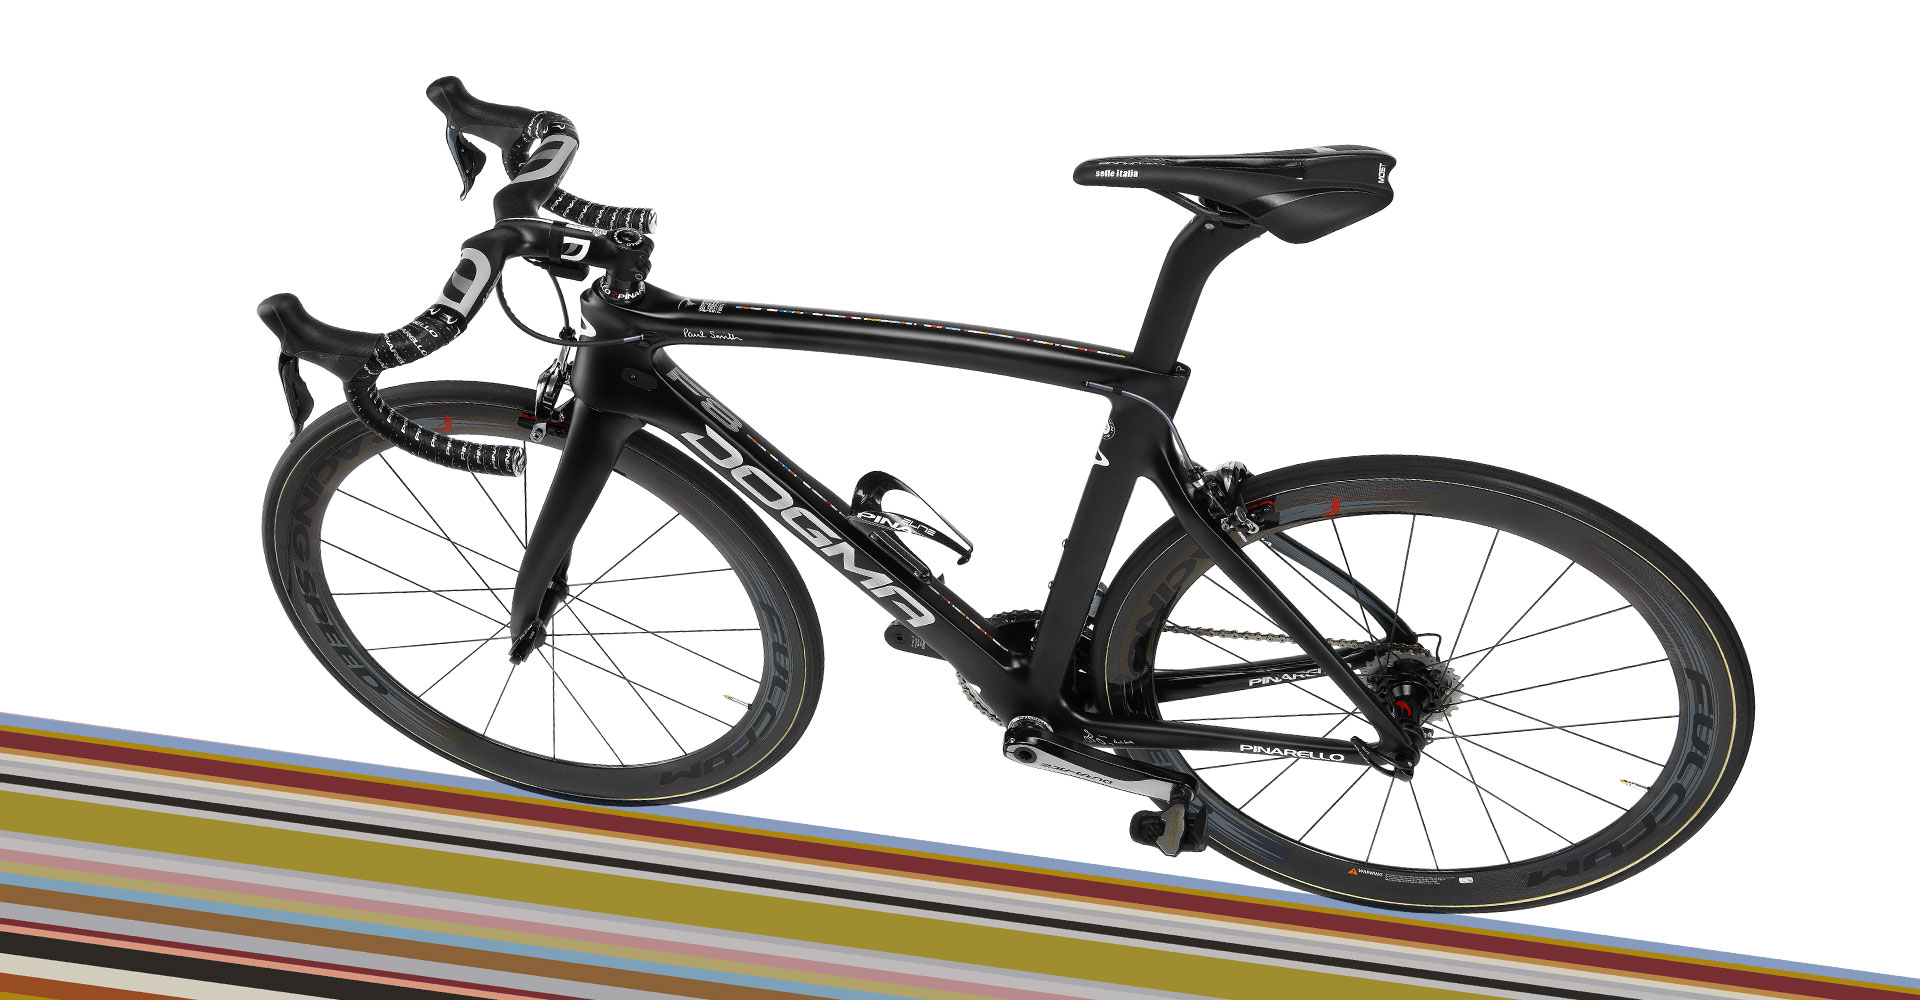 Special edition road bike